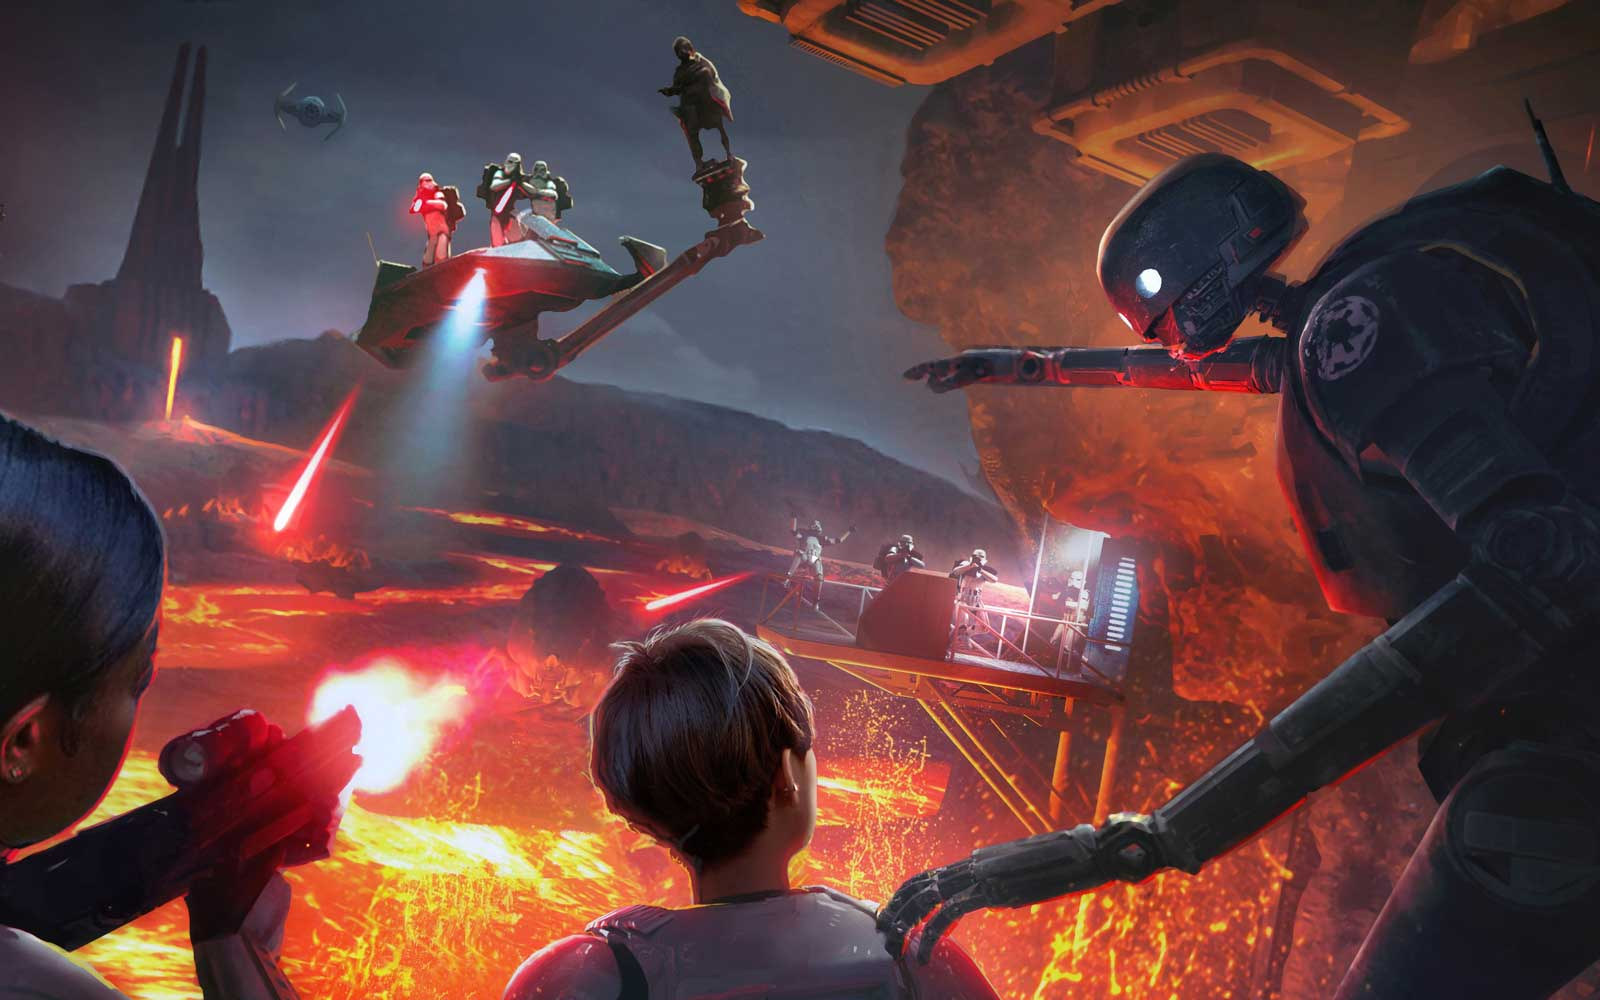 Star Wars VR ride coming to Disney in 2018